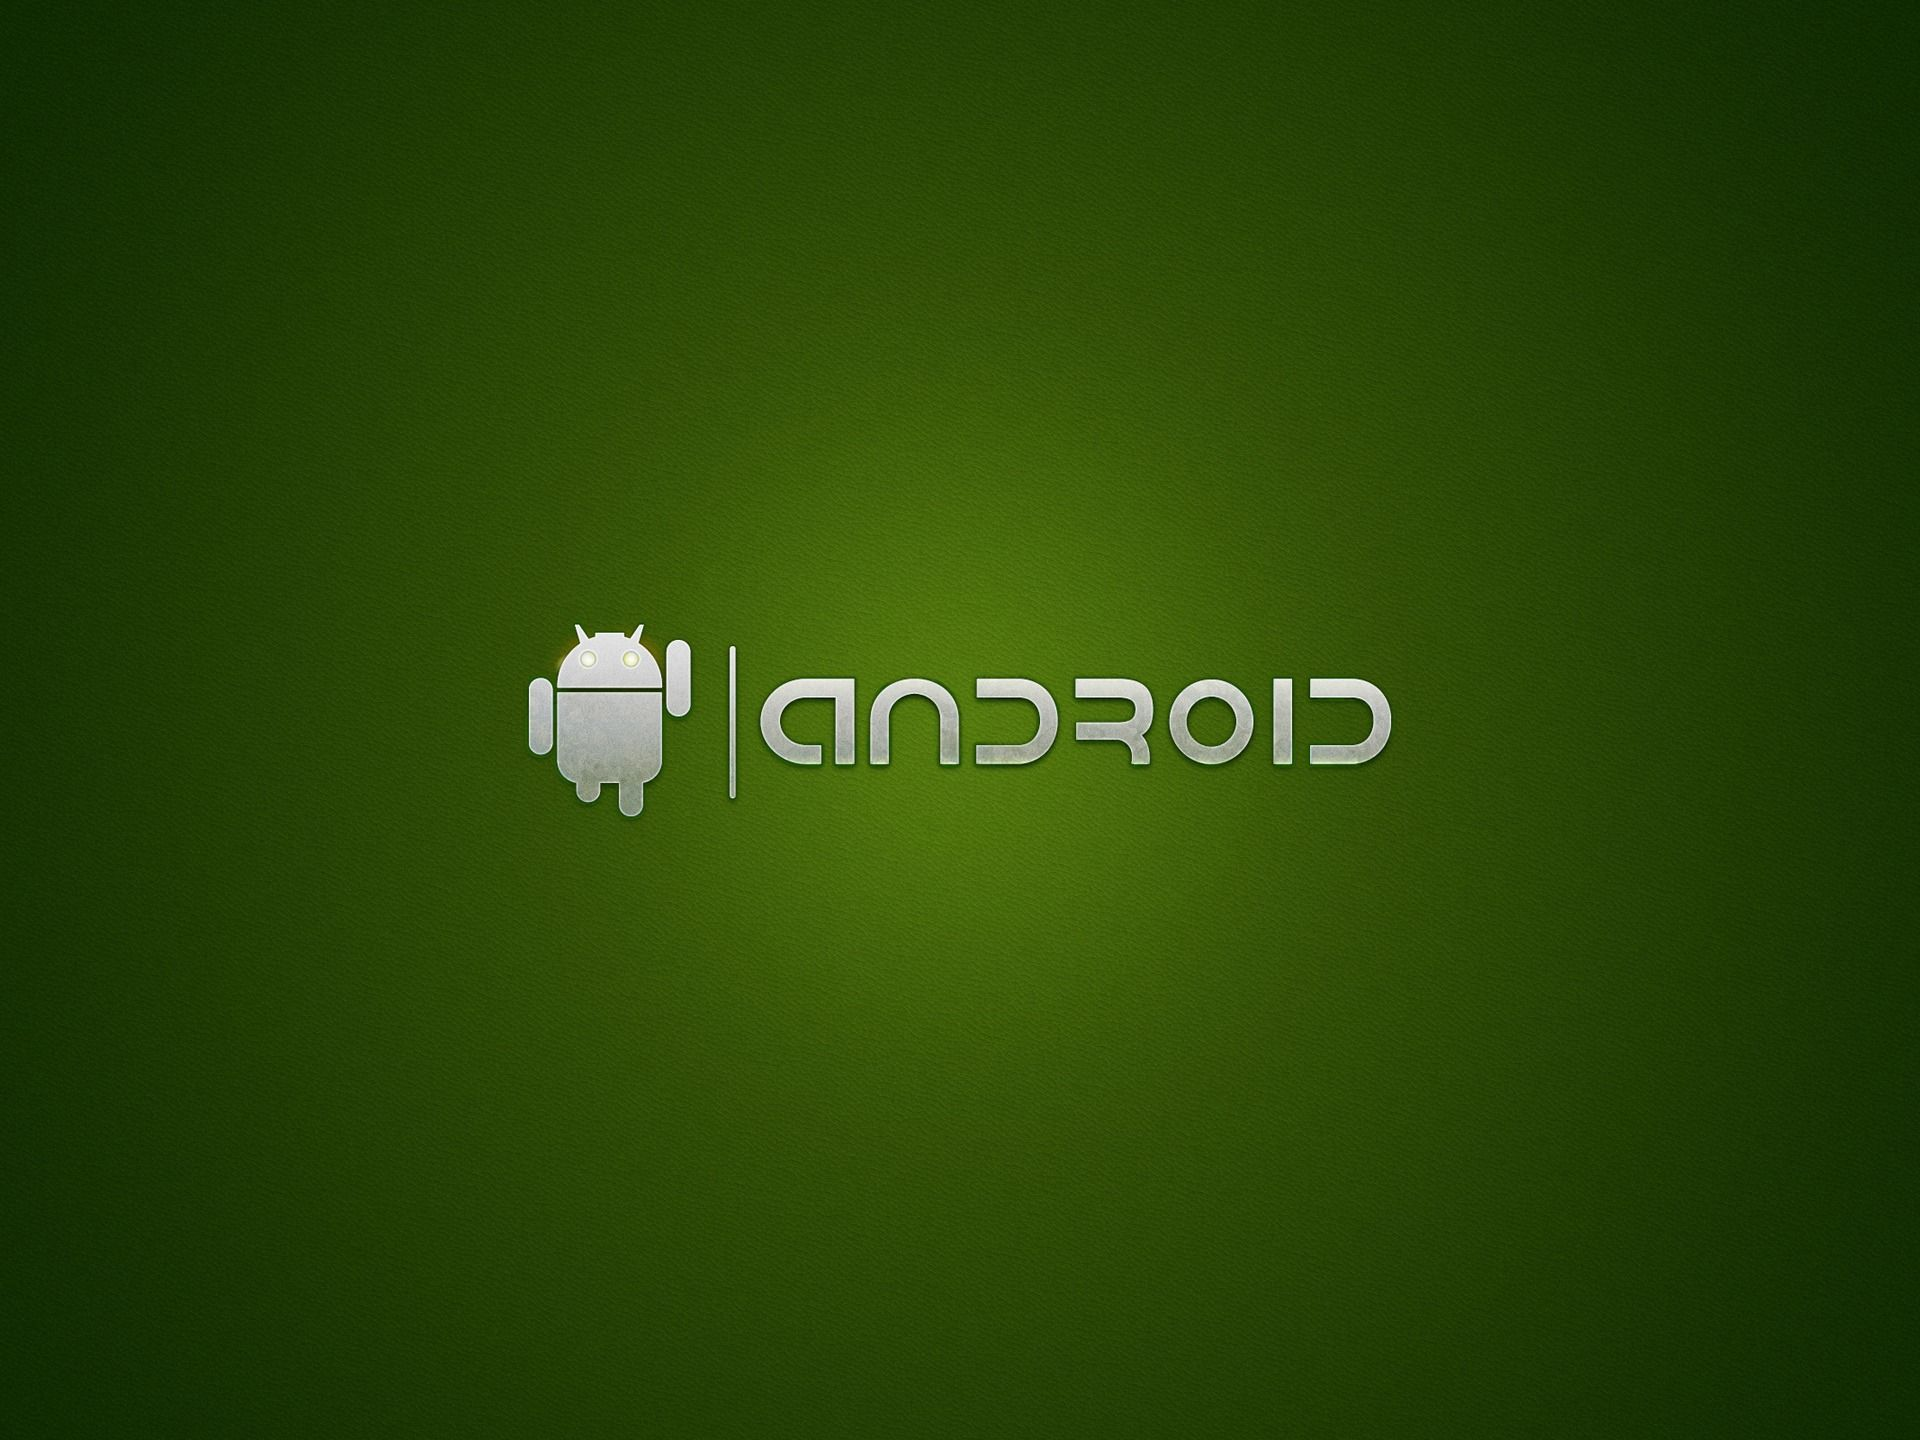 Free Android Wallpapers and Android Backgrounds android